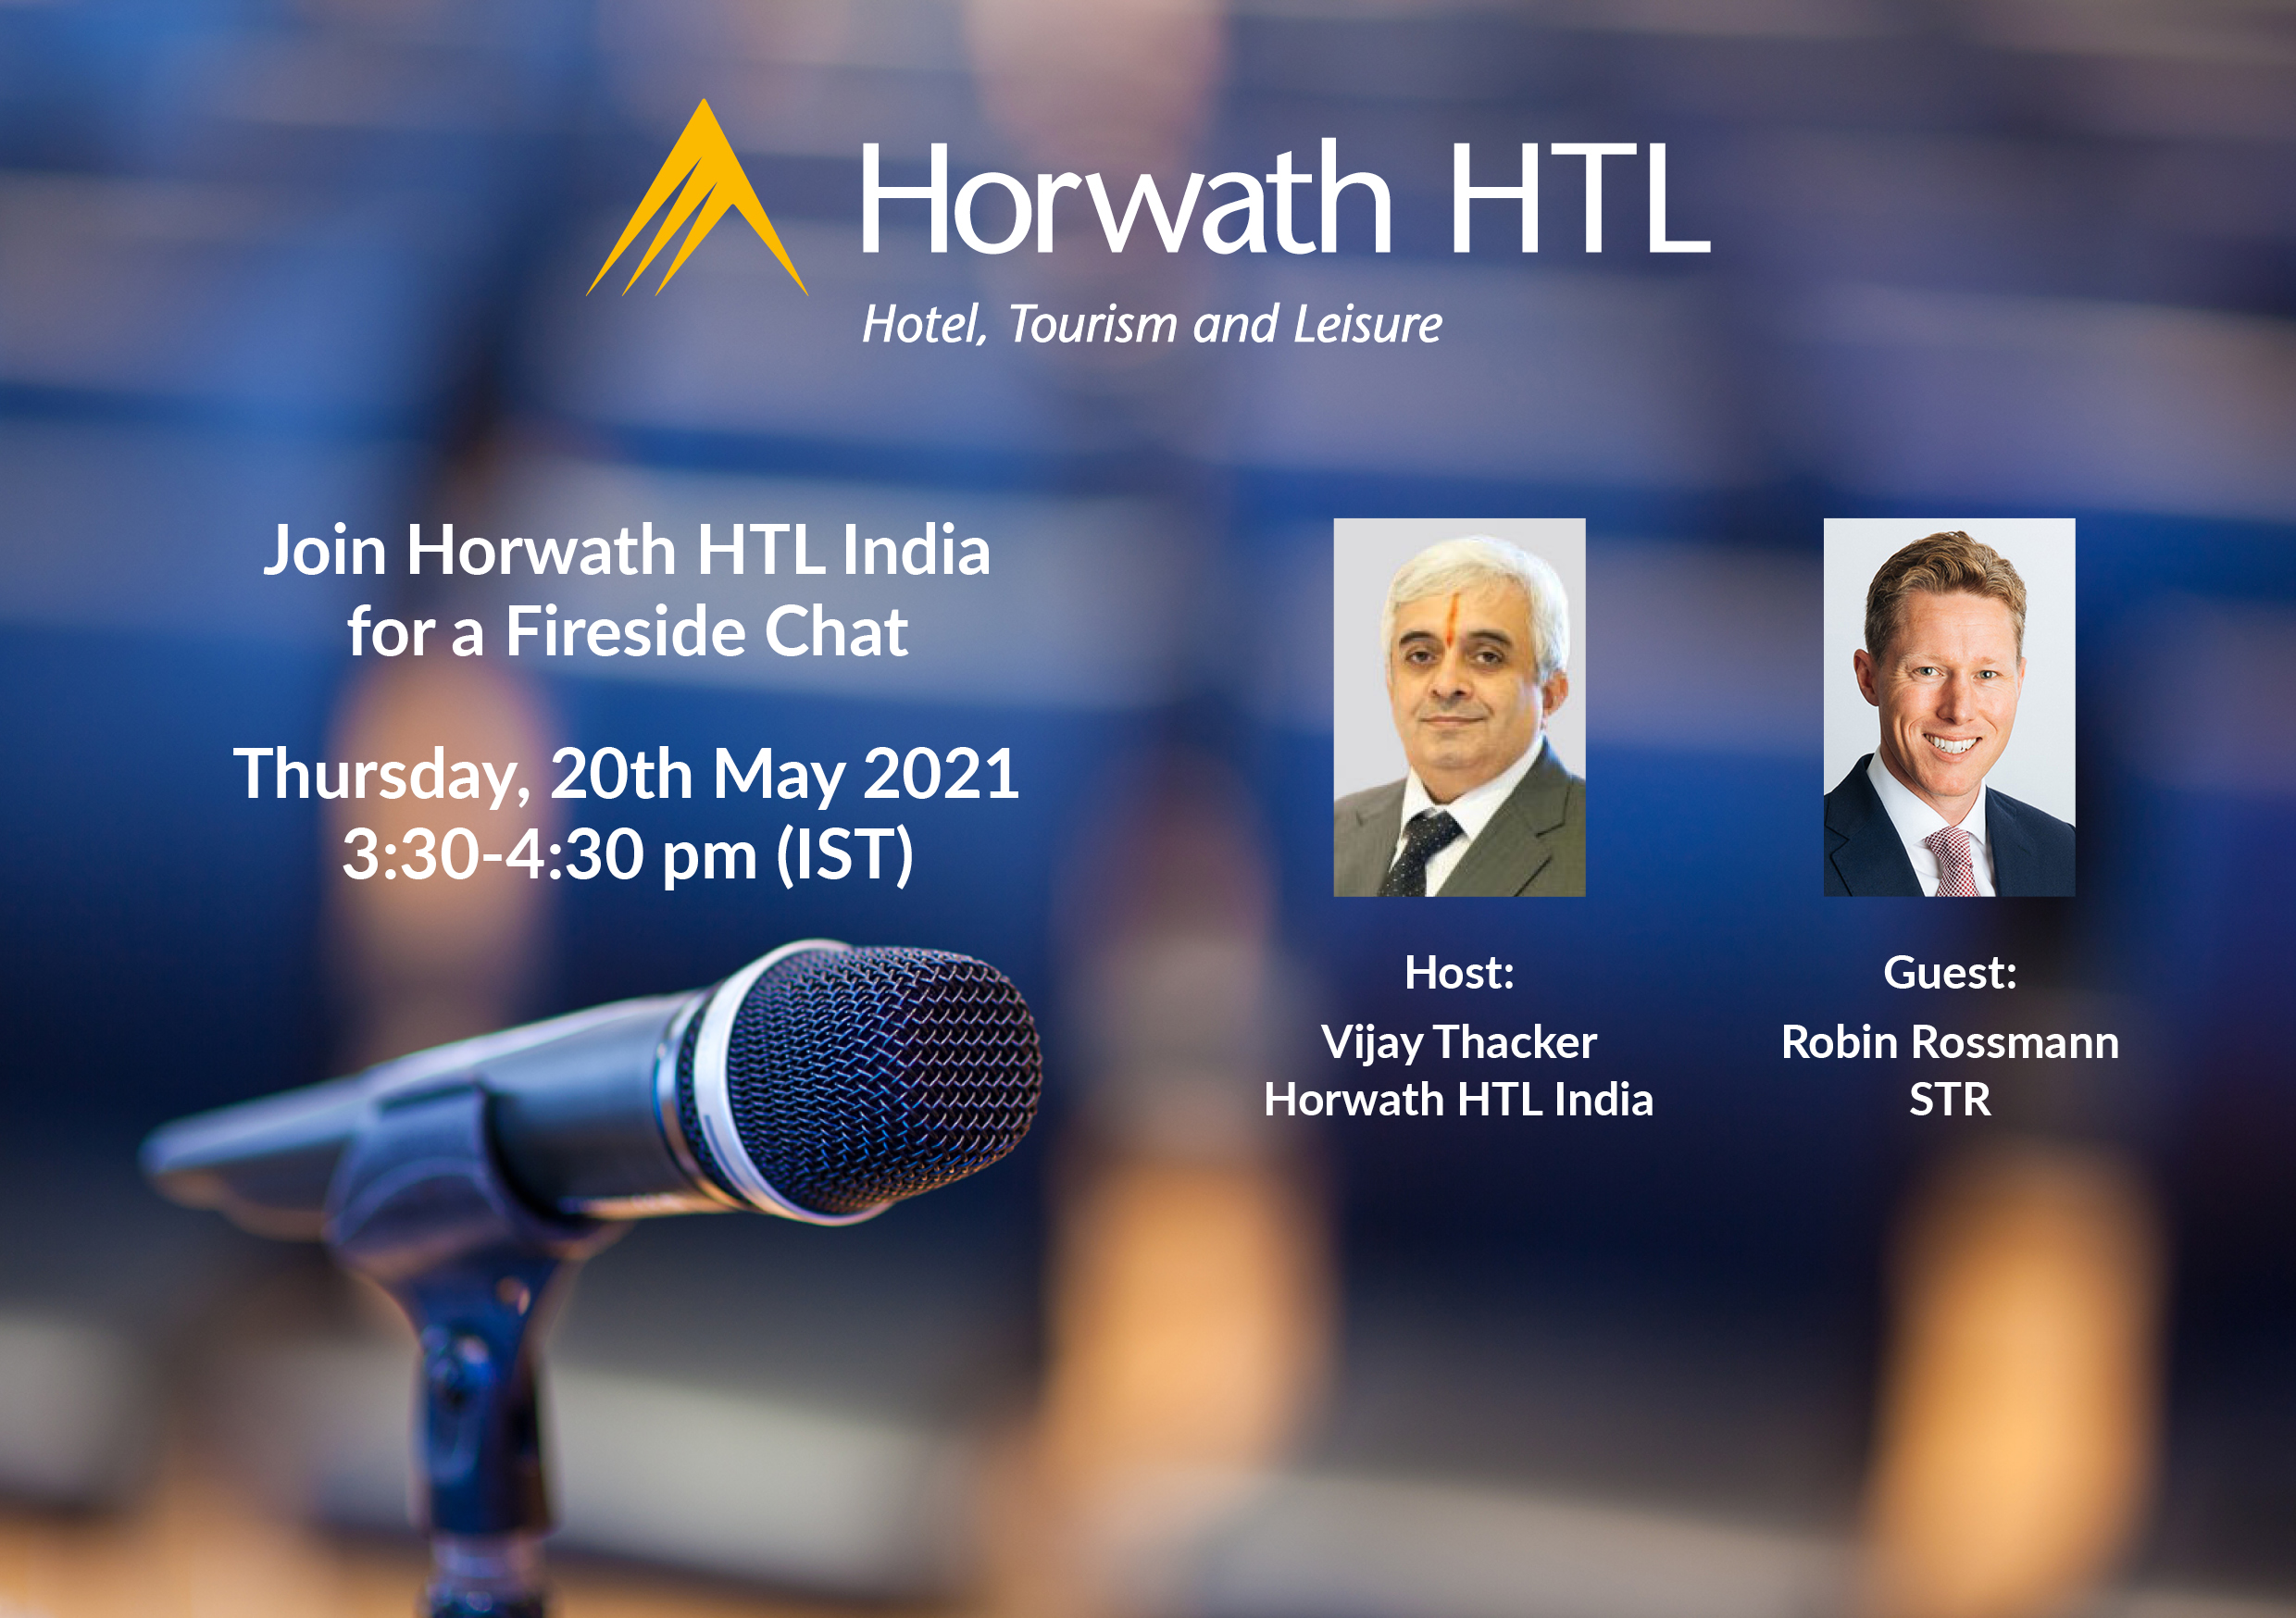 Horwath HTL India: A Fireside Chat with Robin Rossmann